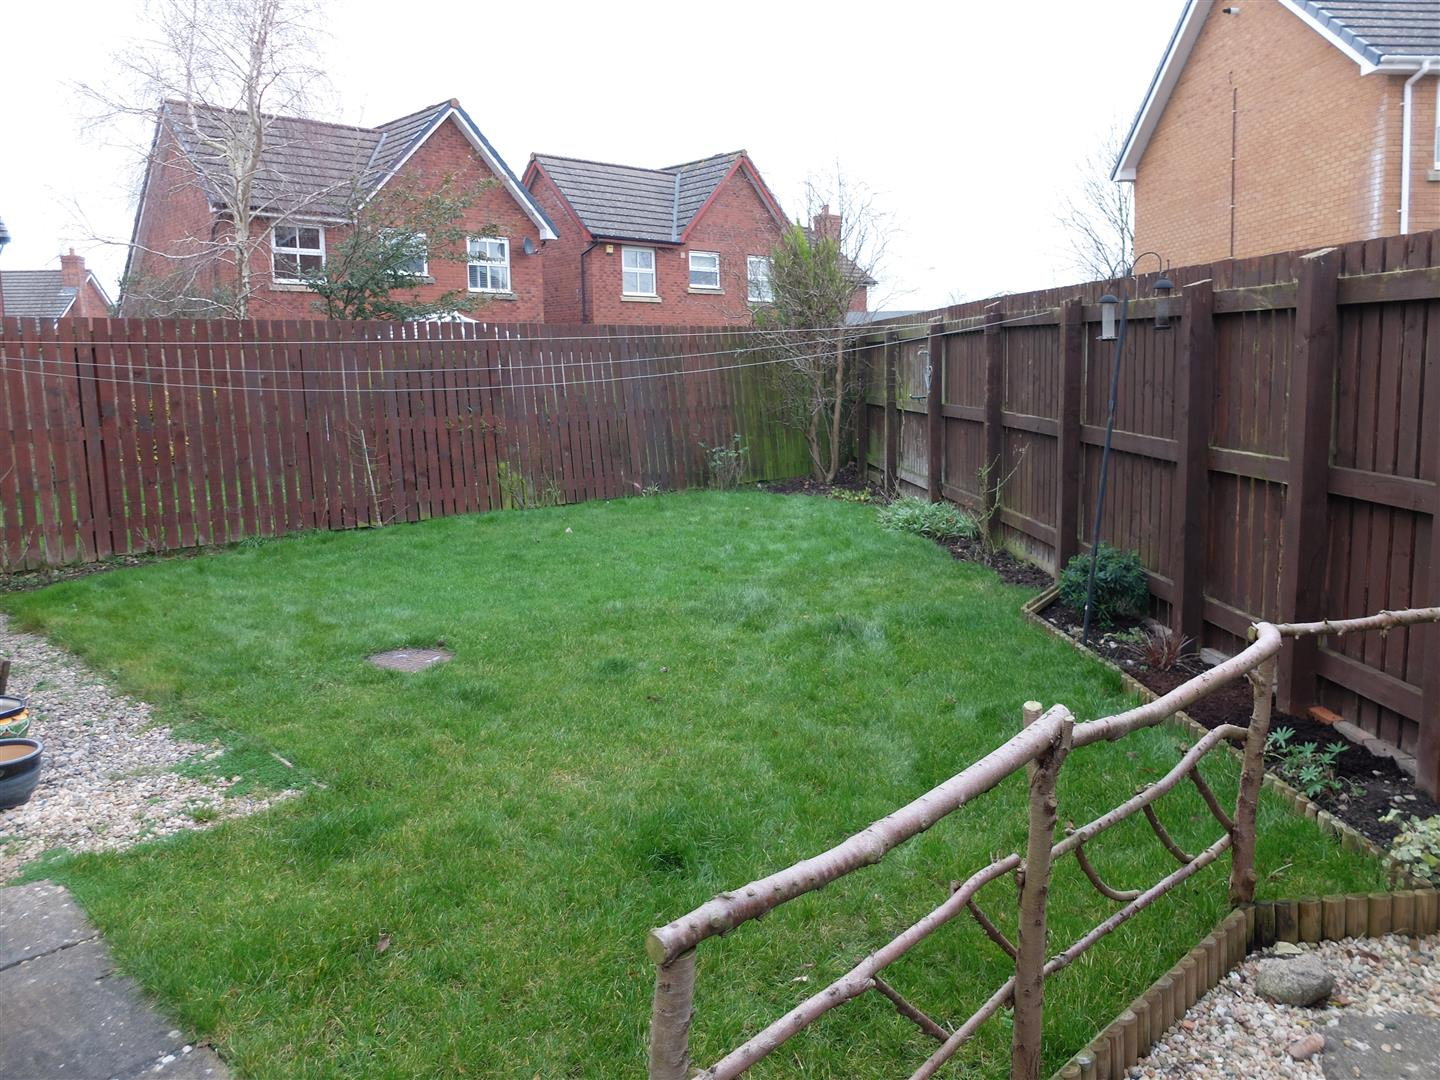 3 Bedrooms House - Semi-Detached For Sale 49 The Paddocks Carlisle